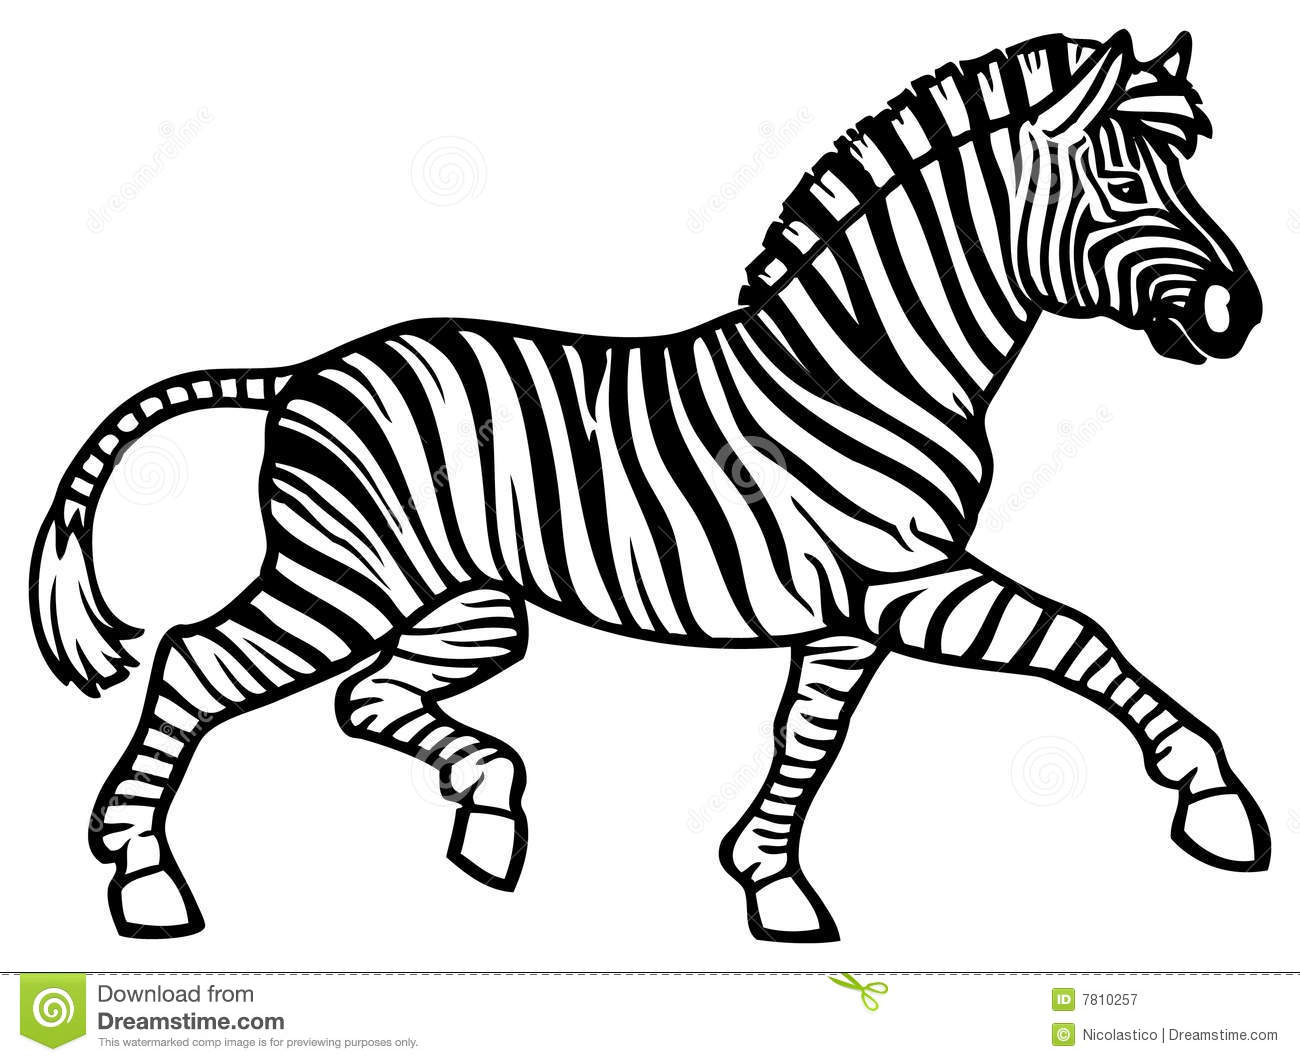 displaying 18 gt images for zebras clipart